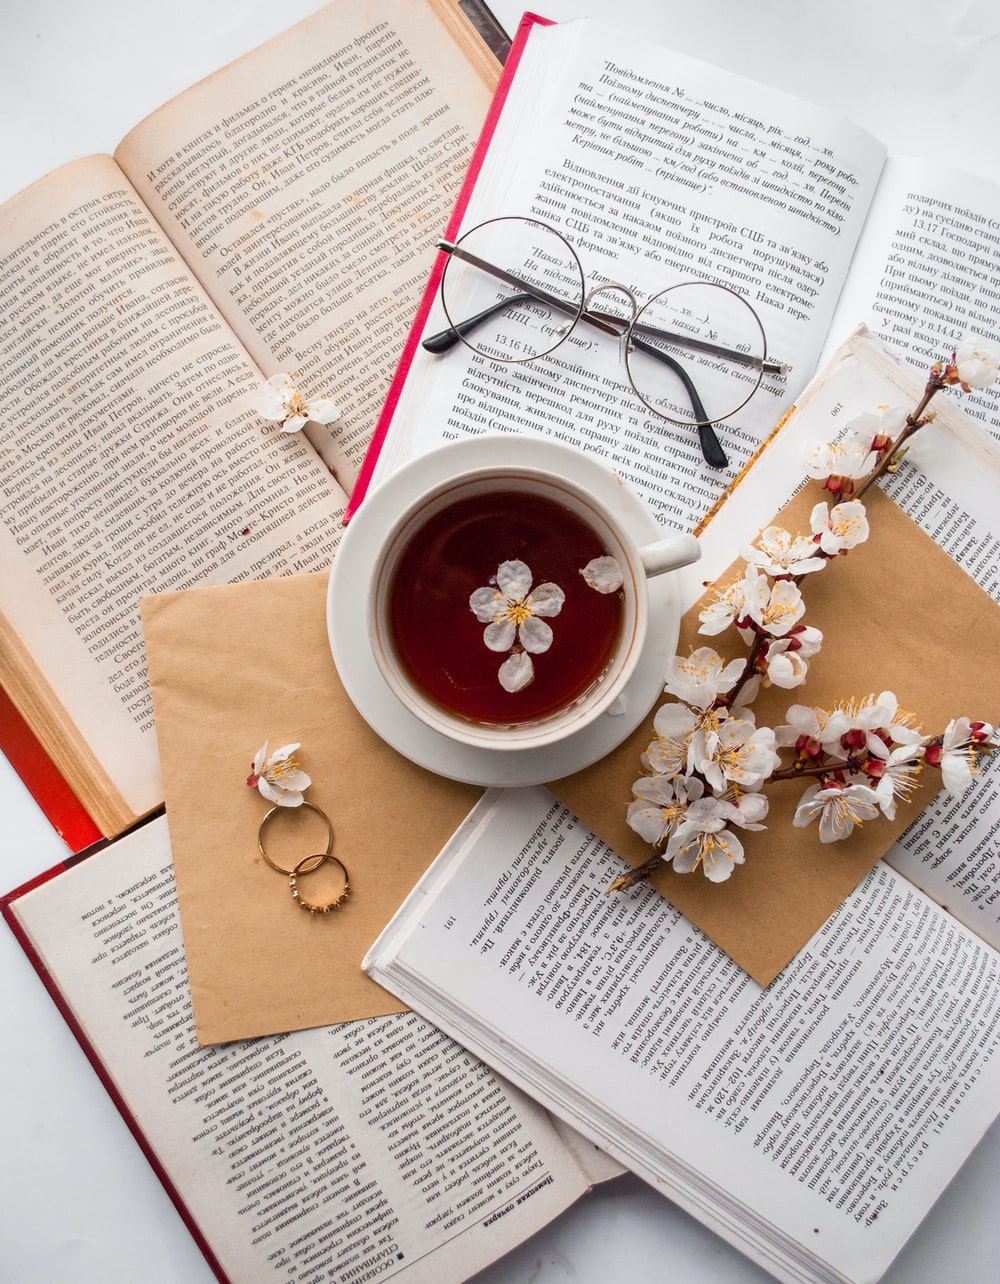 filled teacup on books